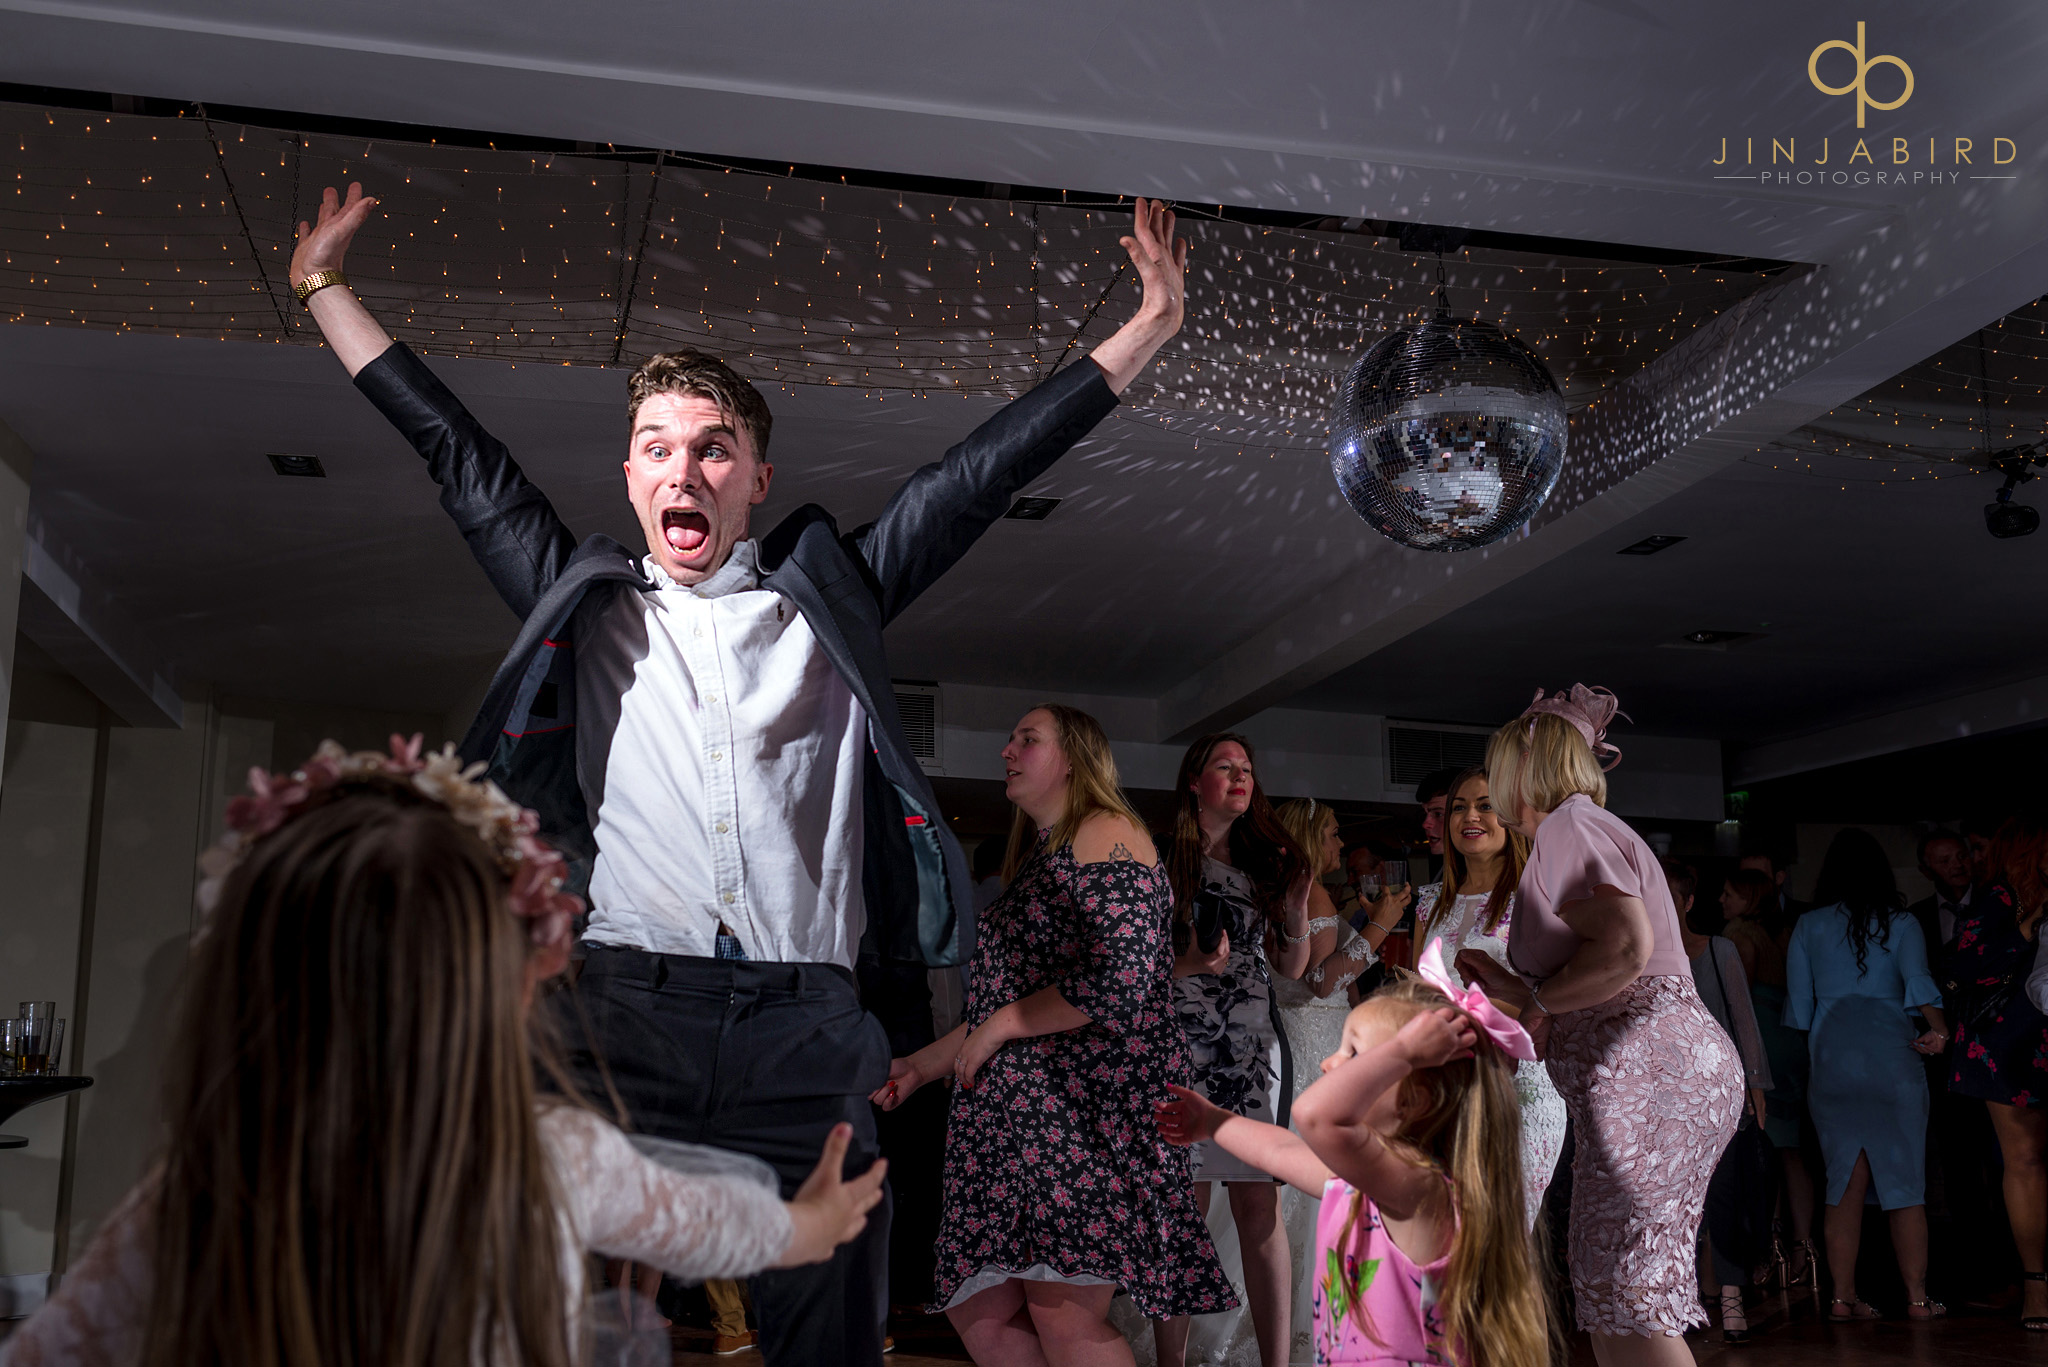 wedding guest with arms in air